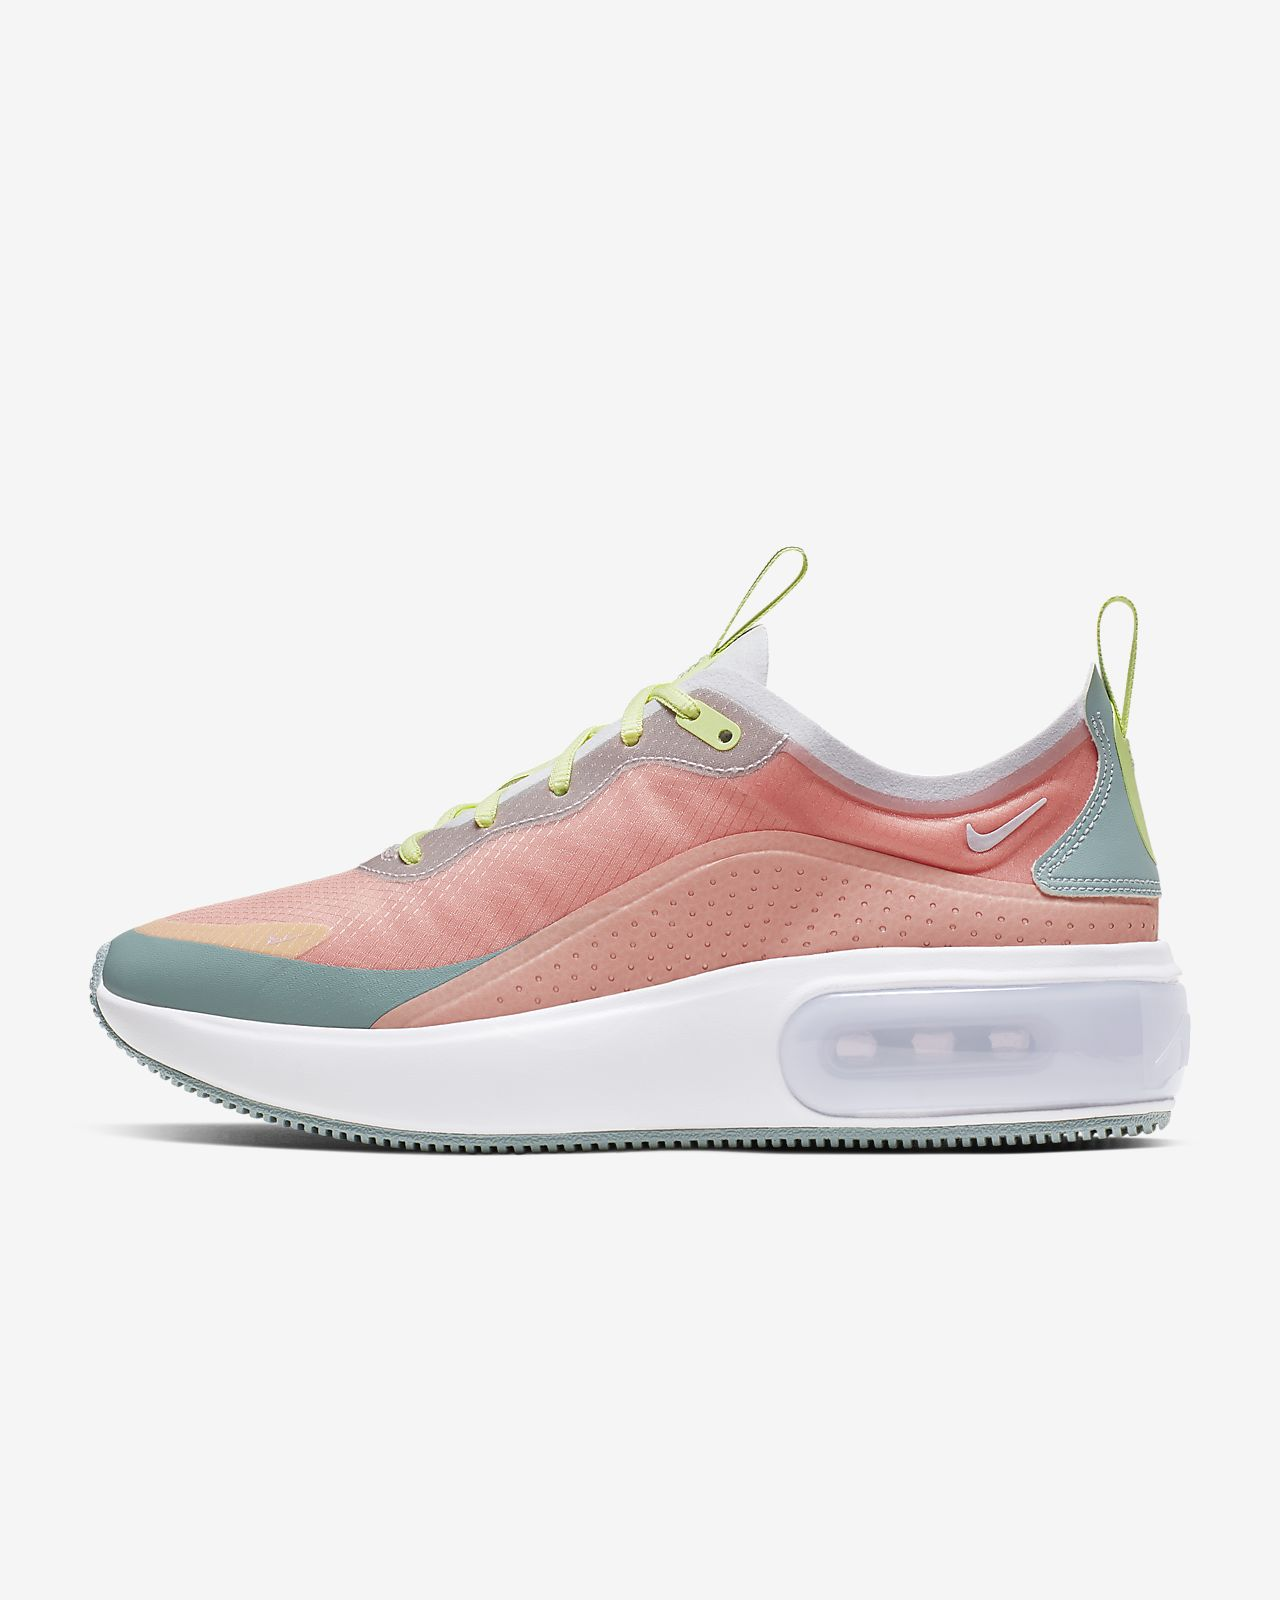 Womens Shoes Nike Sportswear Air Max